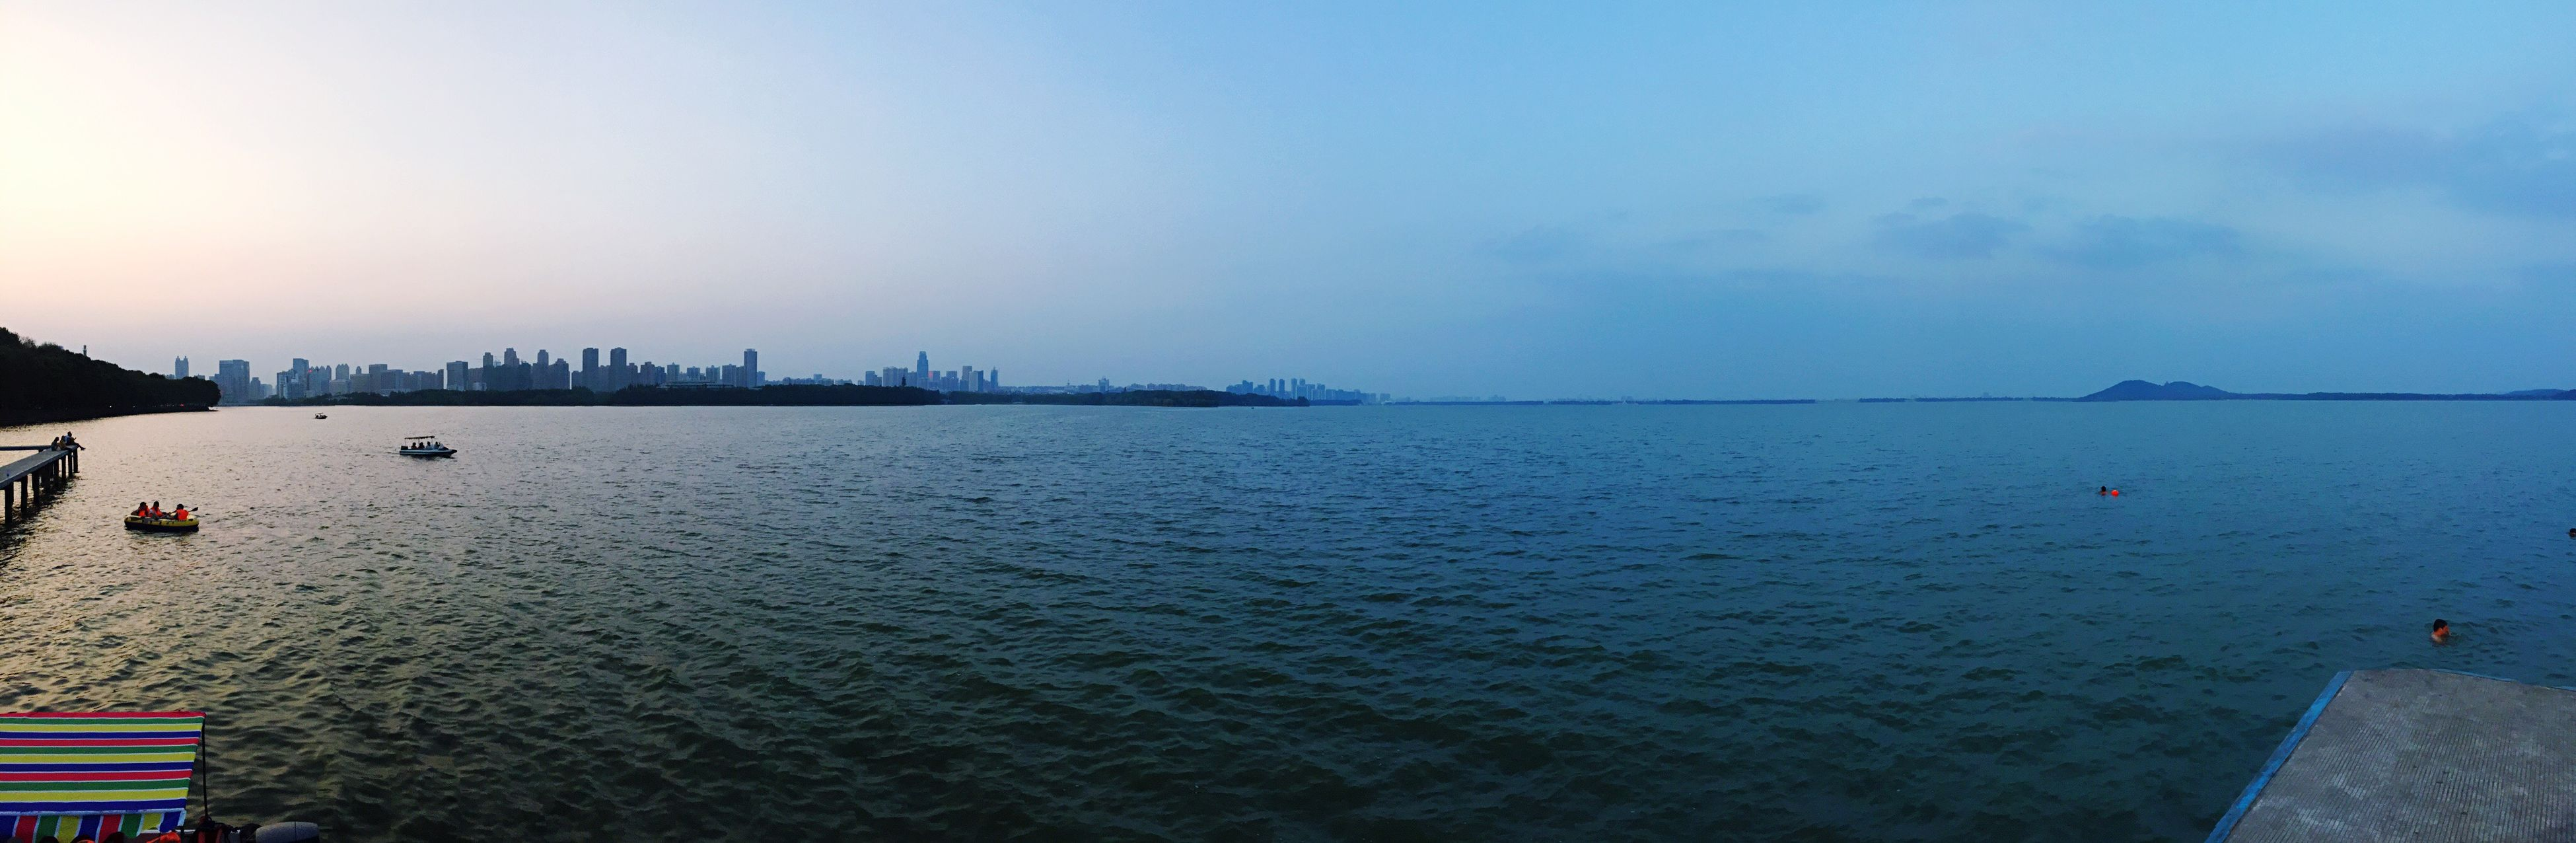 water, sky, tranquil scene, tranquility, scenics, sea, city, calm, river, blue, day, waterfront, distant, nature, cloud, outdoors, ocean, beauty in nature, in front of, no people, harbor, urban skyline